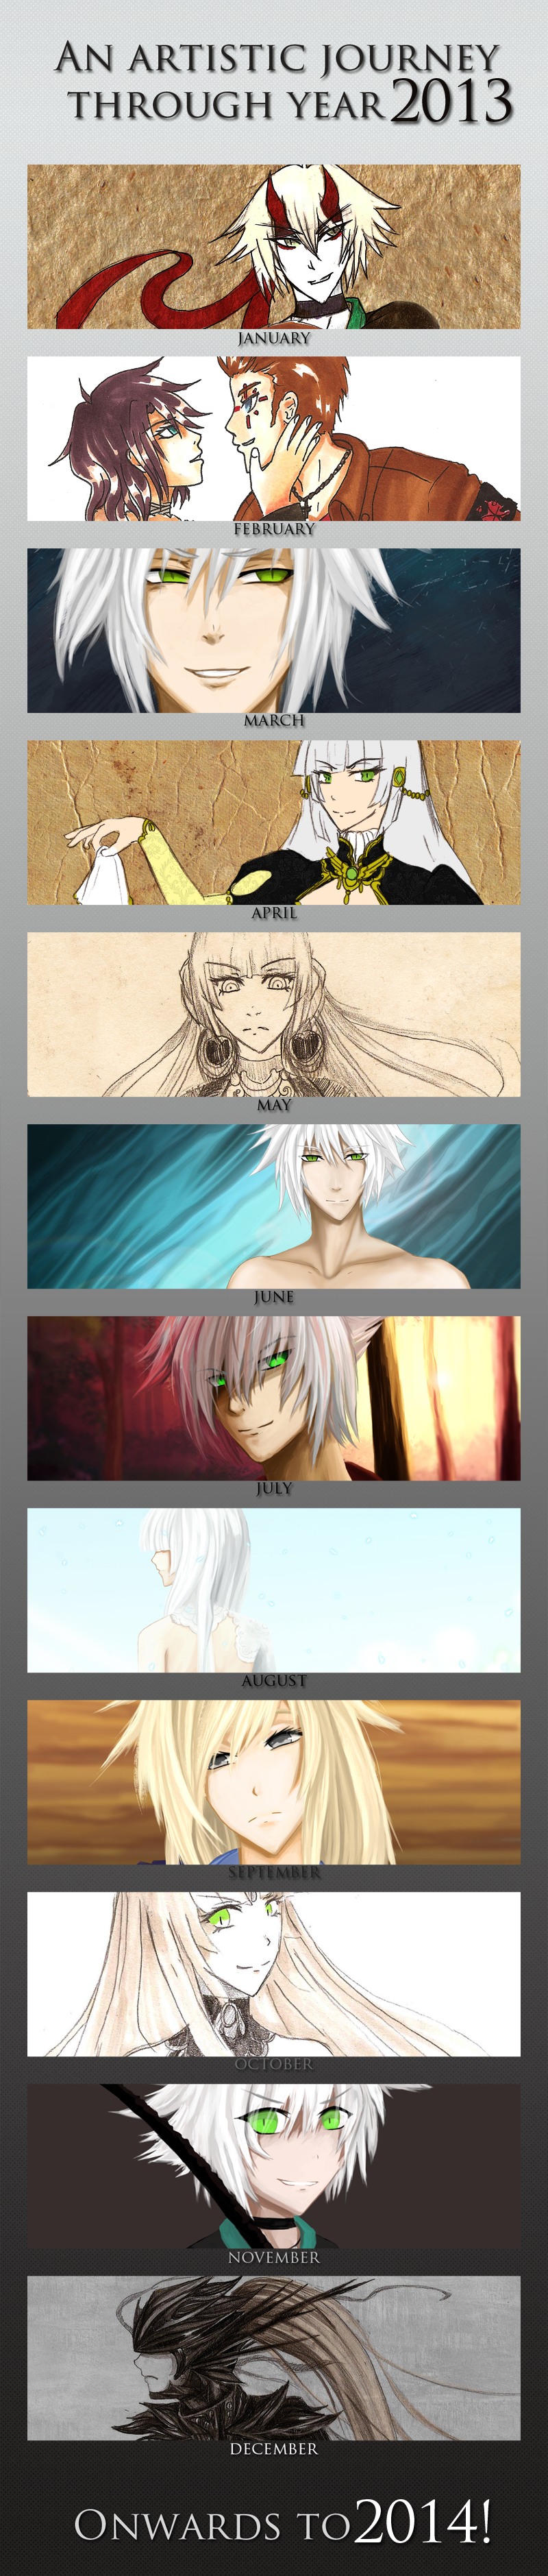 2013 Art Summary by Noire-Ighaan